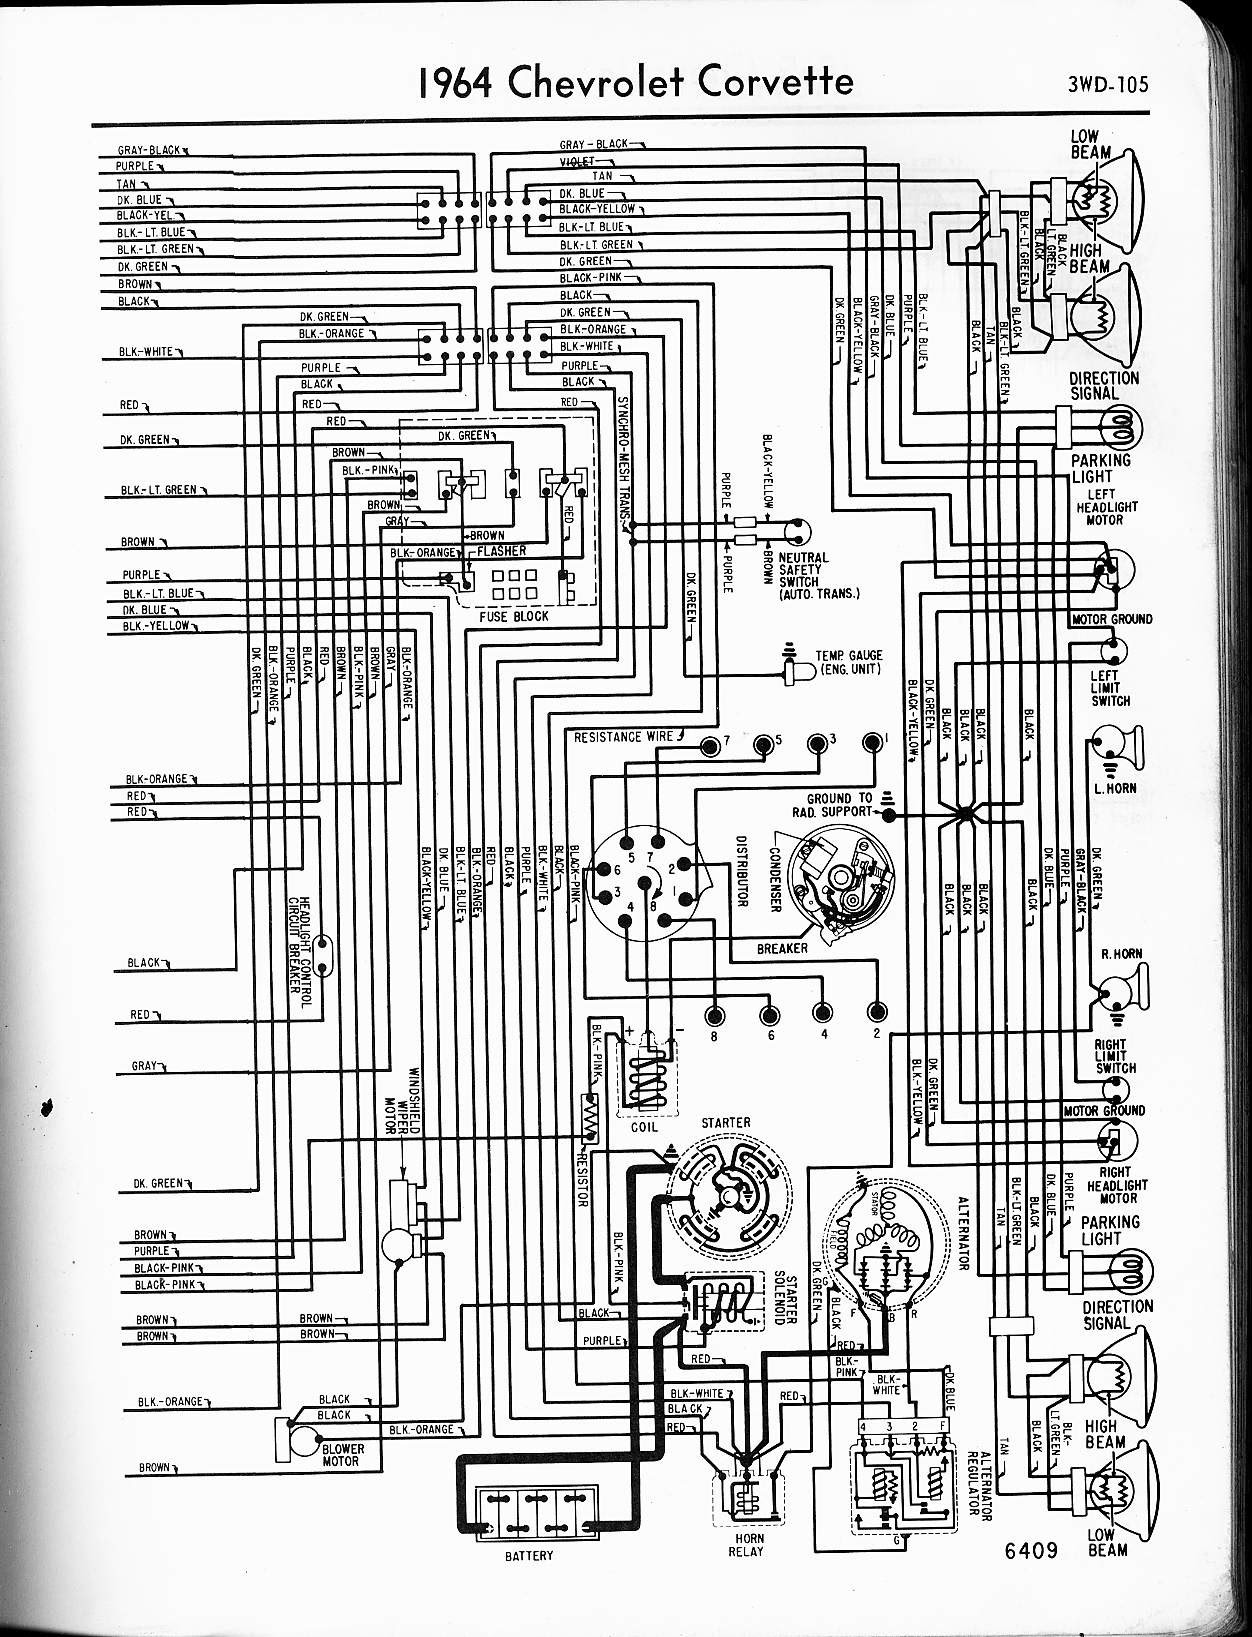 1972 Camaro Fuse Diagram Wiring Diagram Monitor1 Monitor1 Maceratadoc It